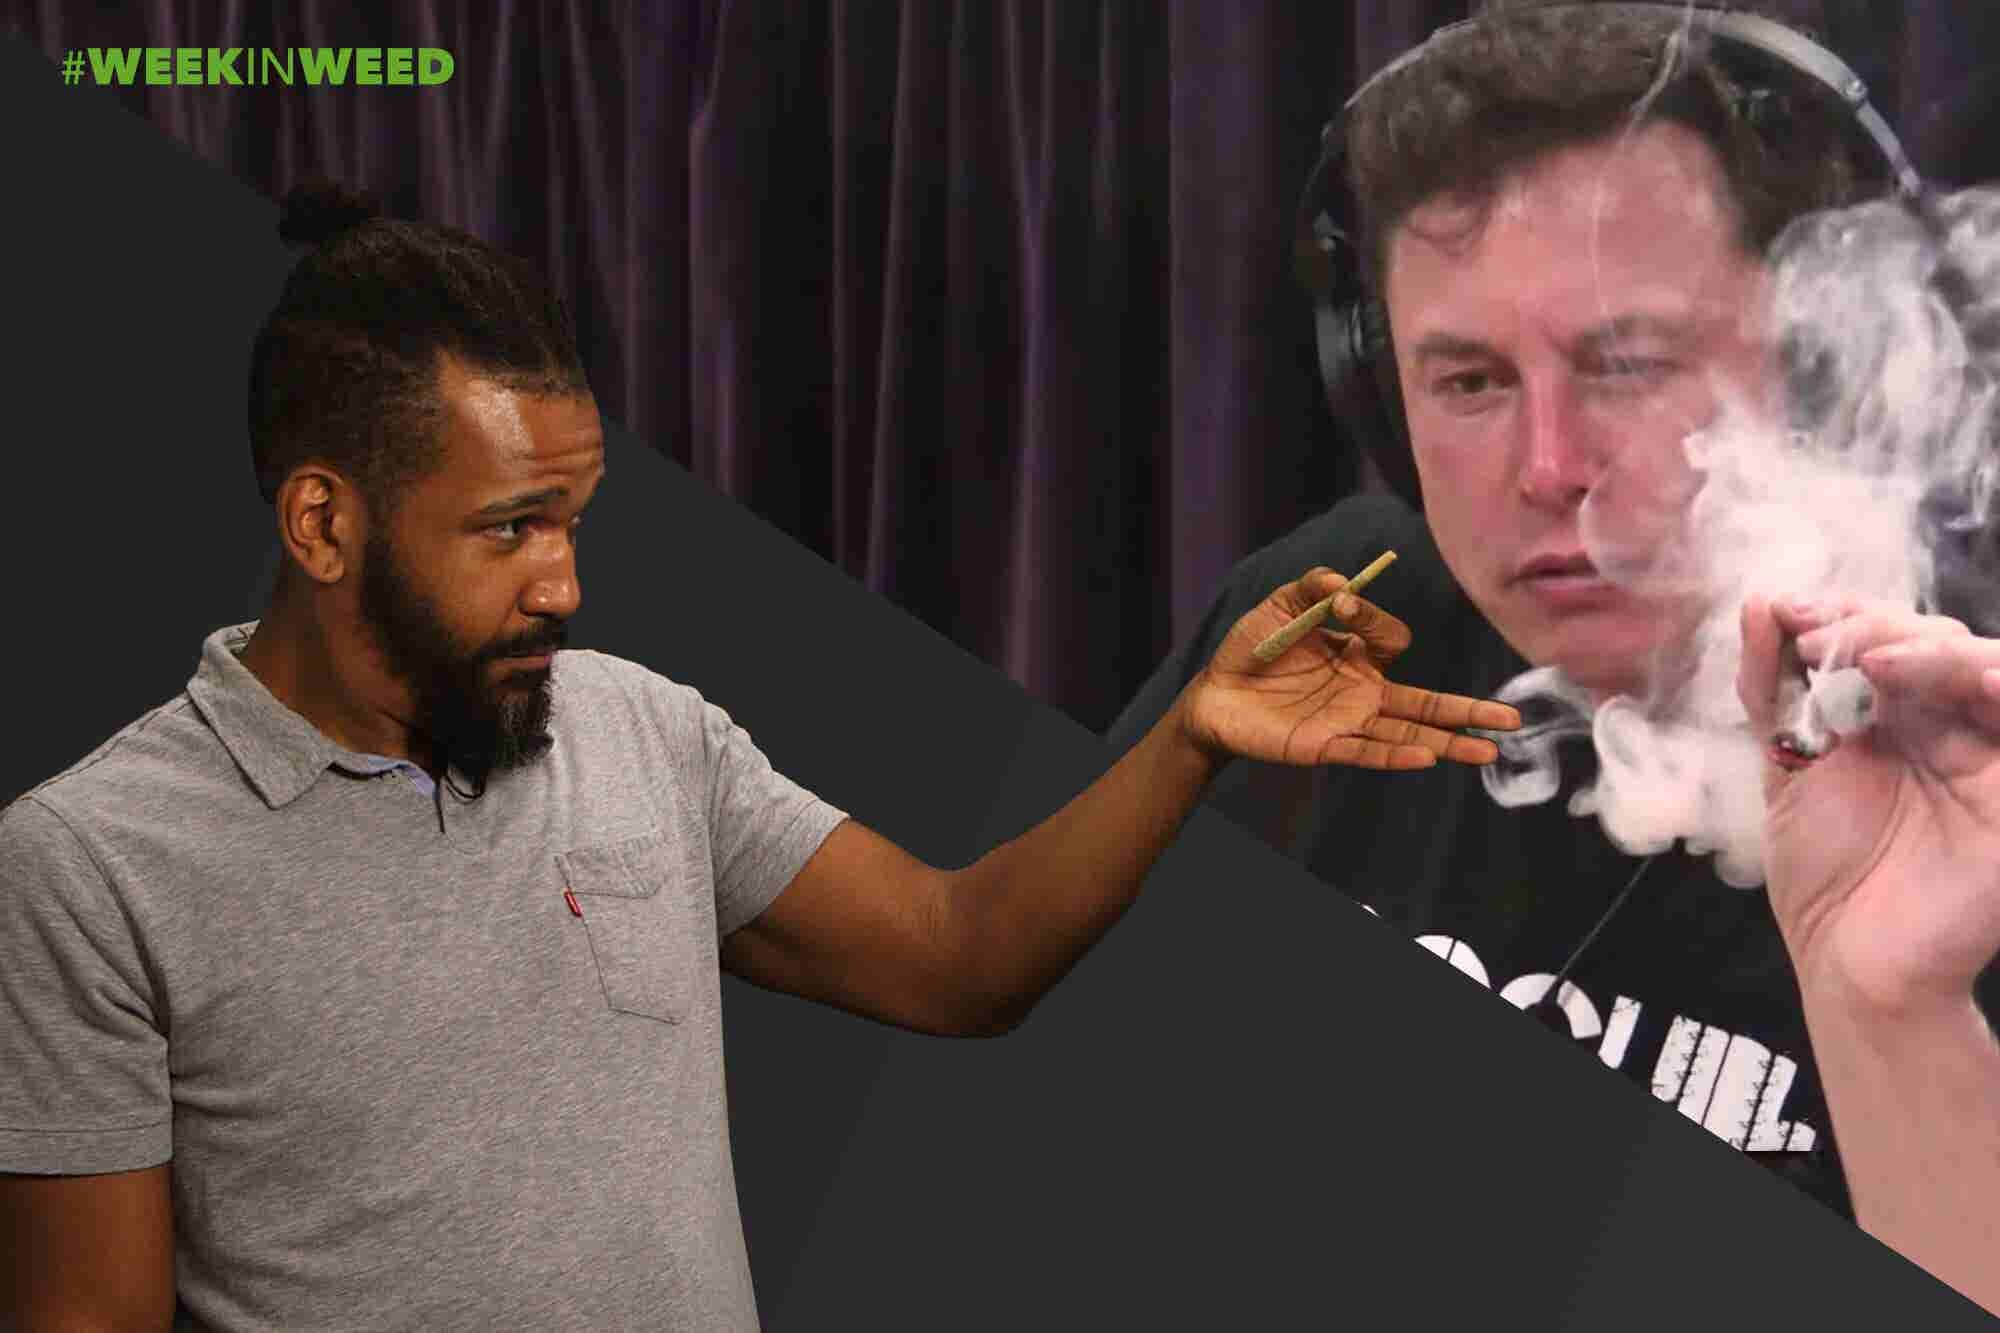 This Week in Weed: Elon Musk Smokes Pot!